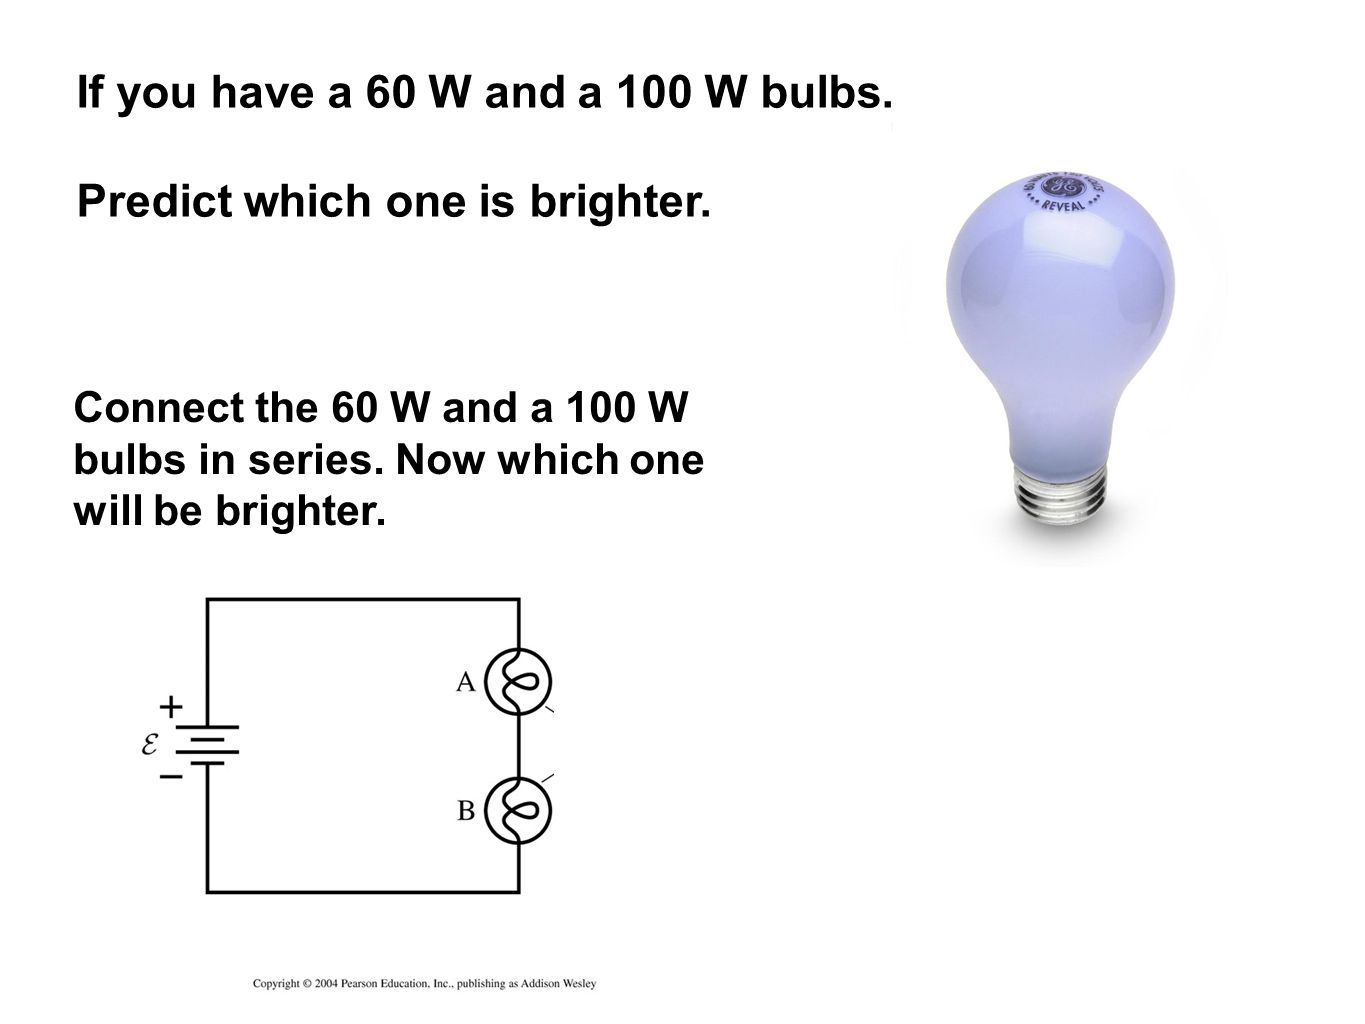 Series And Parallel Circuits Ppt Video Online Download Bulbs In A Circuit If You Have 60 W 100 Predict Which One Is 4 Analyze The